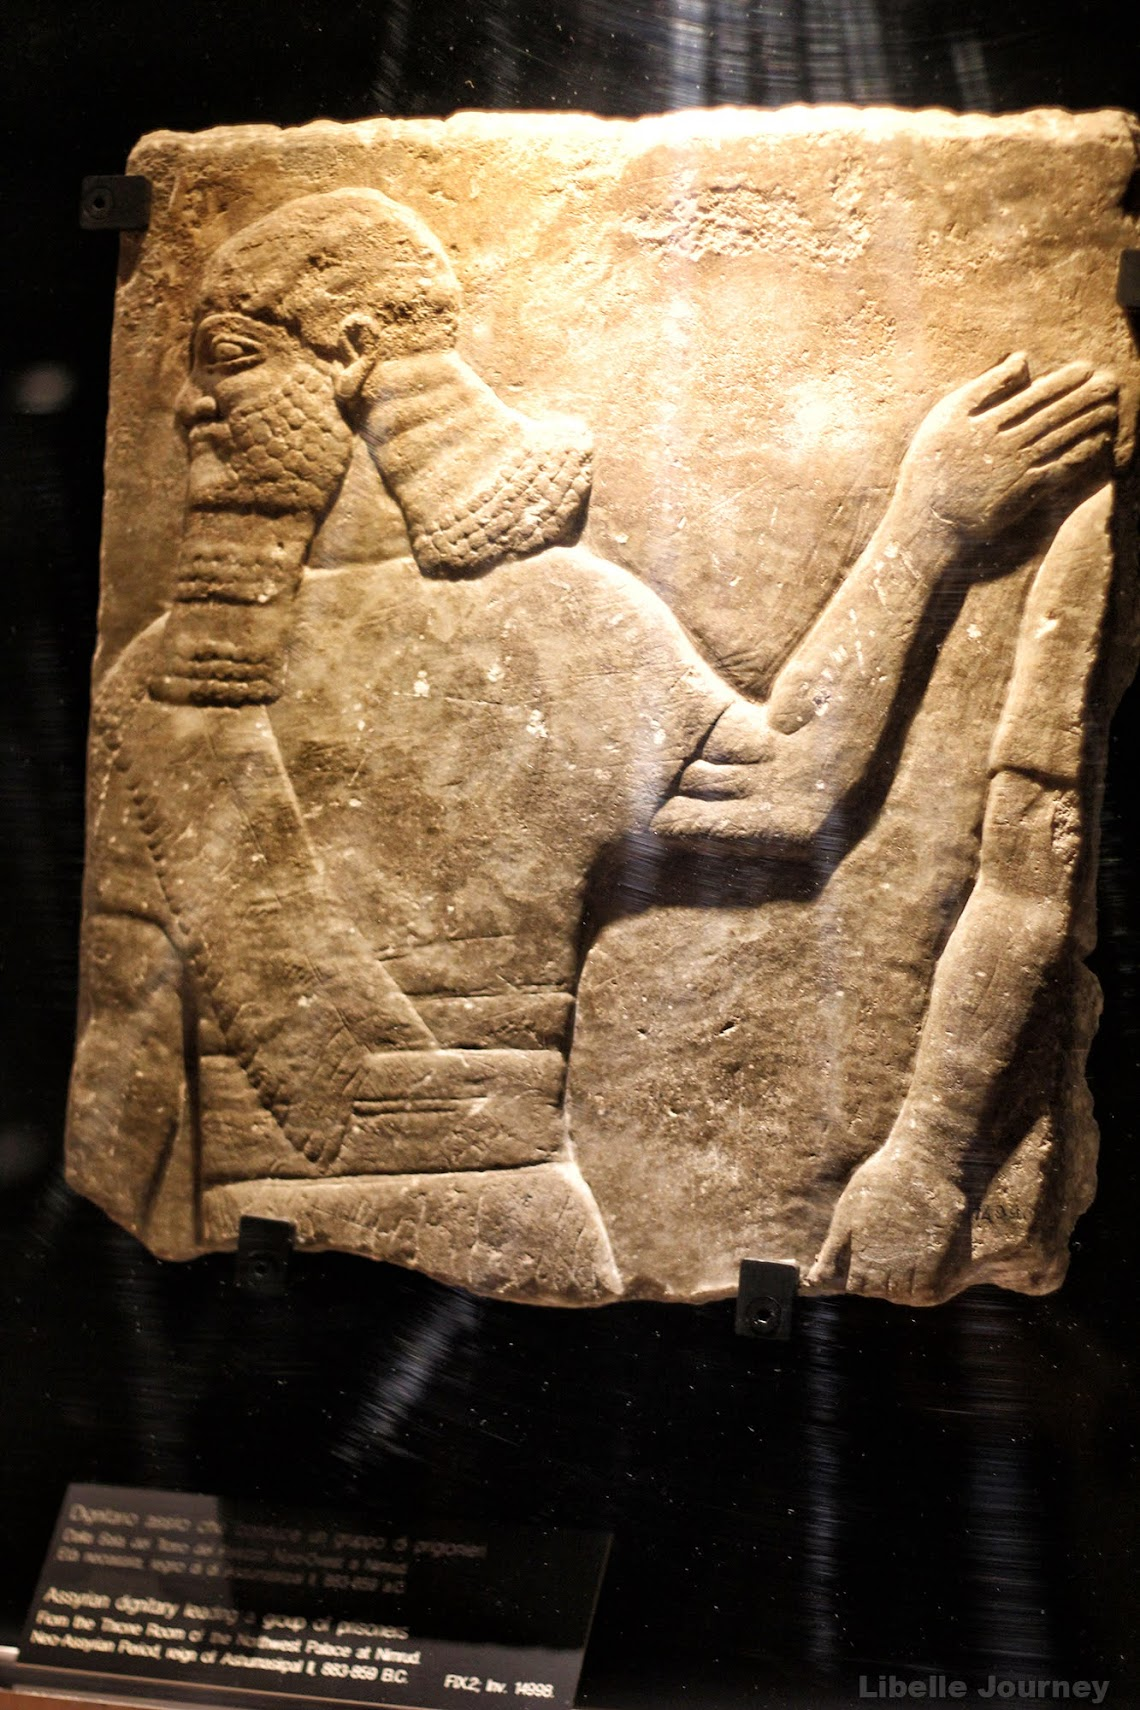 assyrian dignitary leading a group of prisoners